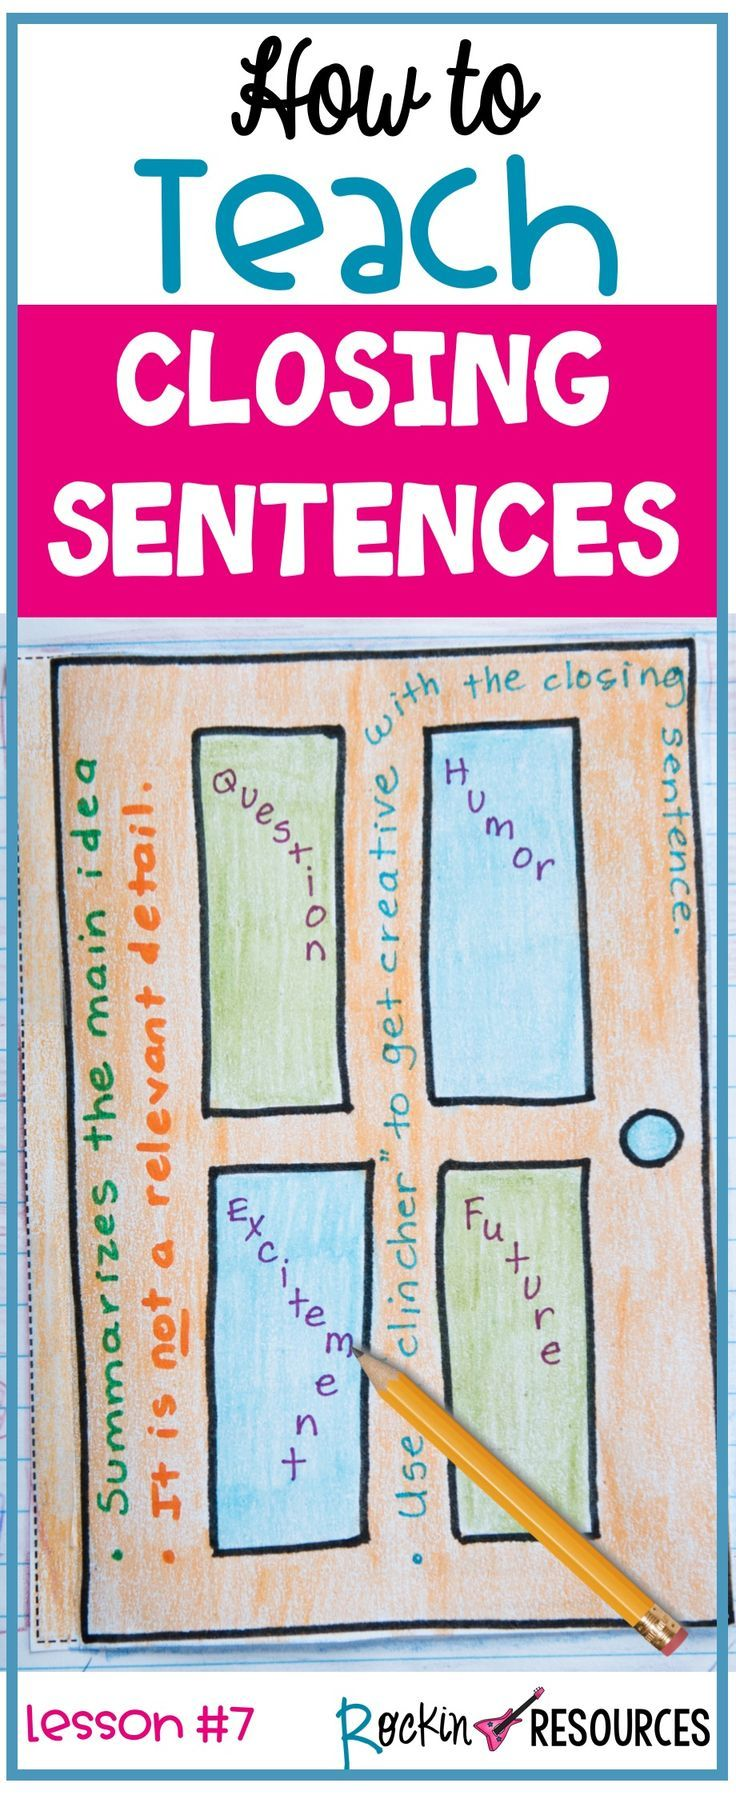 how to teach creative writing to kids One way is teaching creative writing to kids and to teach creative writing online teaching creative writing to kids can be done by incorporating fun with learning words, spellings, sentences, grammar and creative writing are very important for a child's educational development.